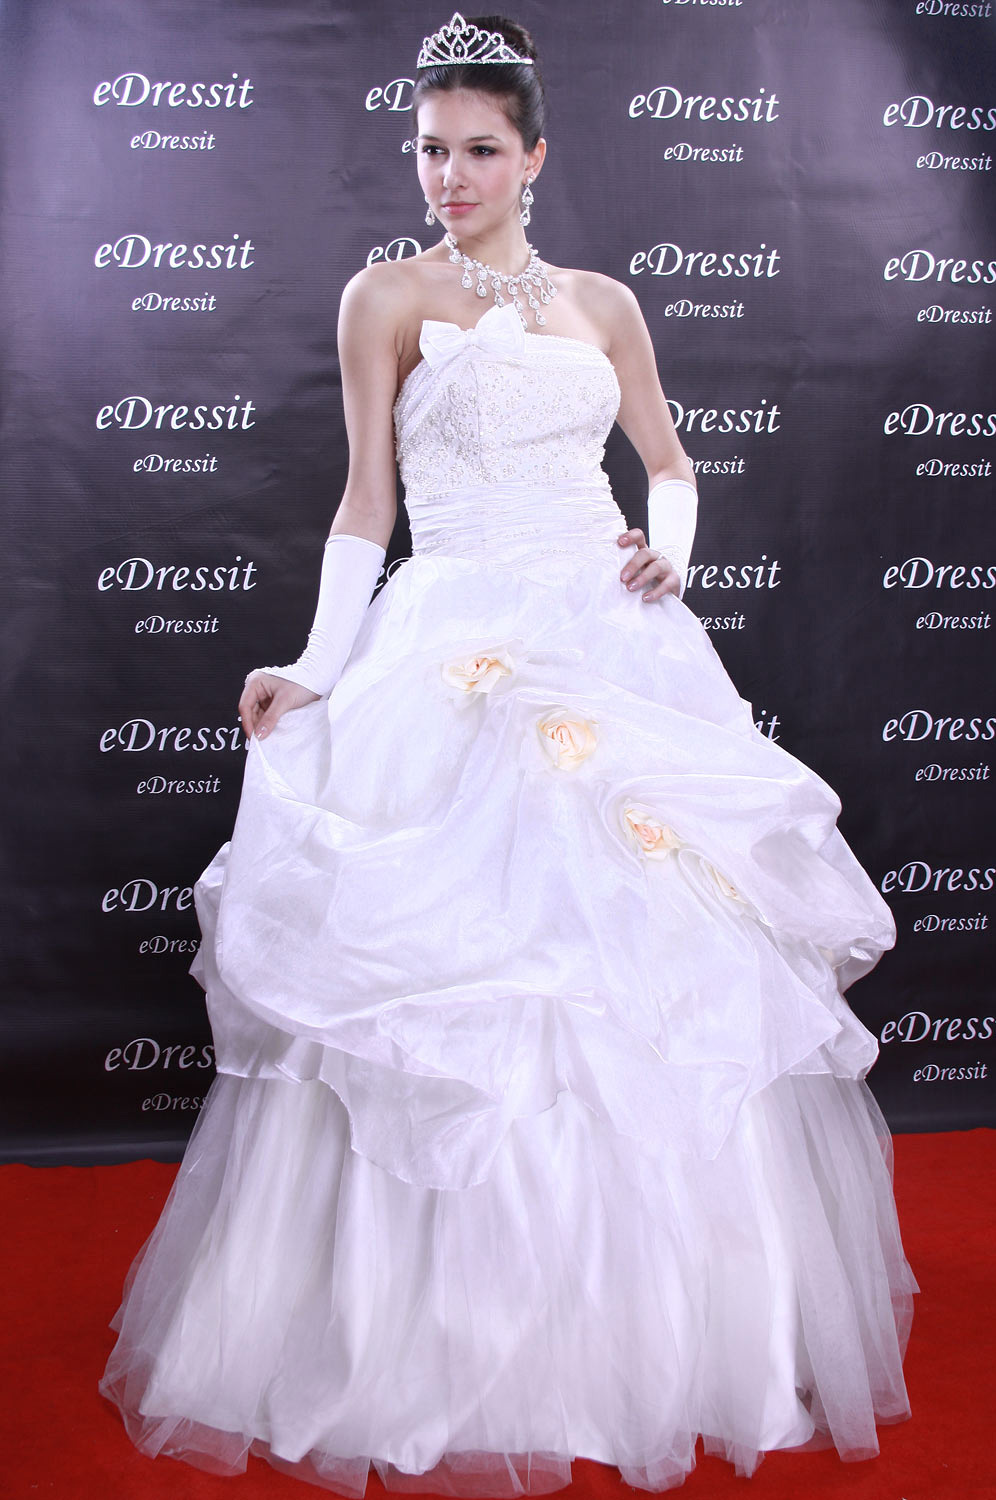 Christmas Discount 50% Off eDressit White Prom Gown Evening Wedding Dress (01090507)